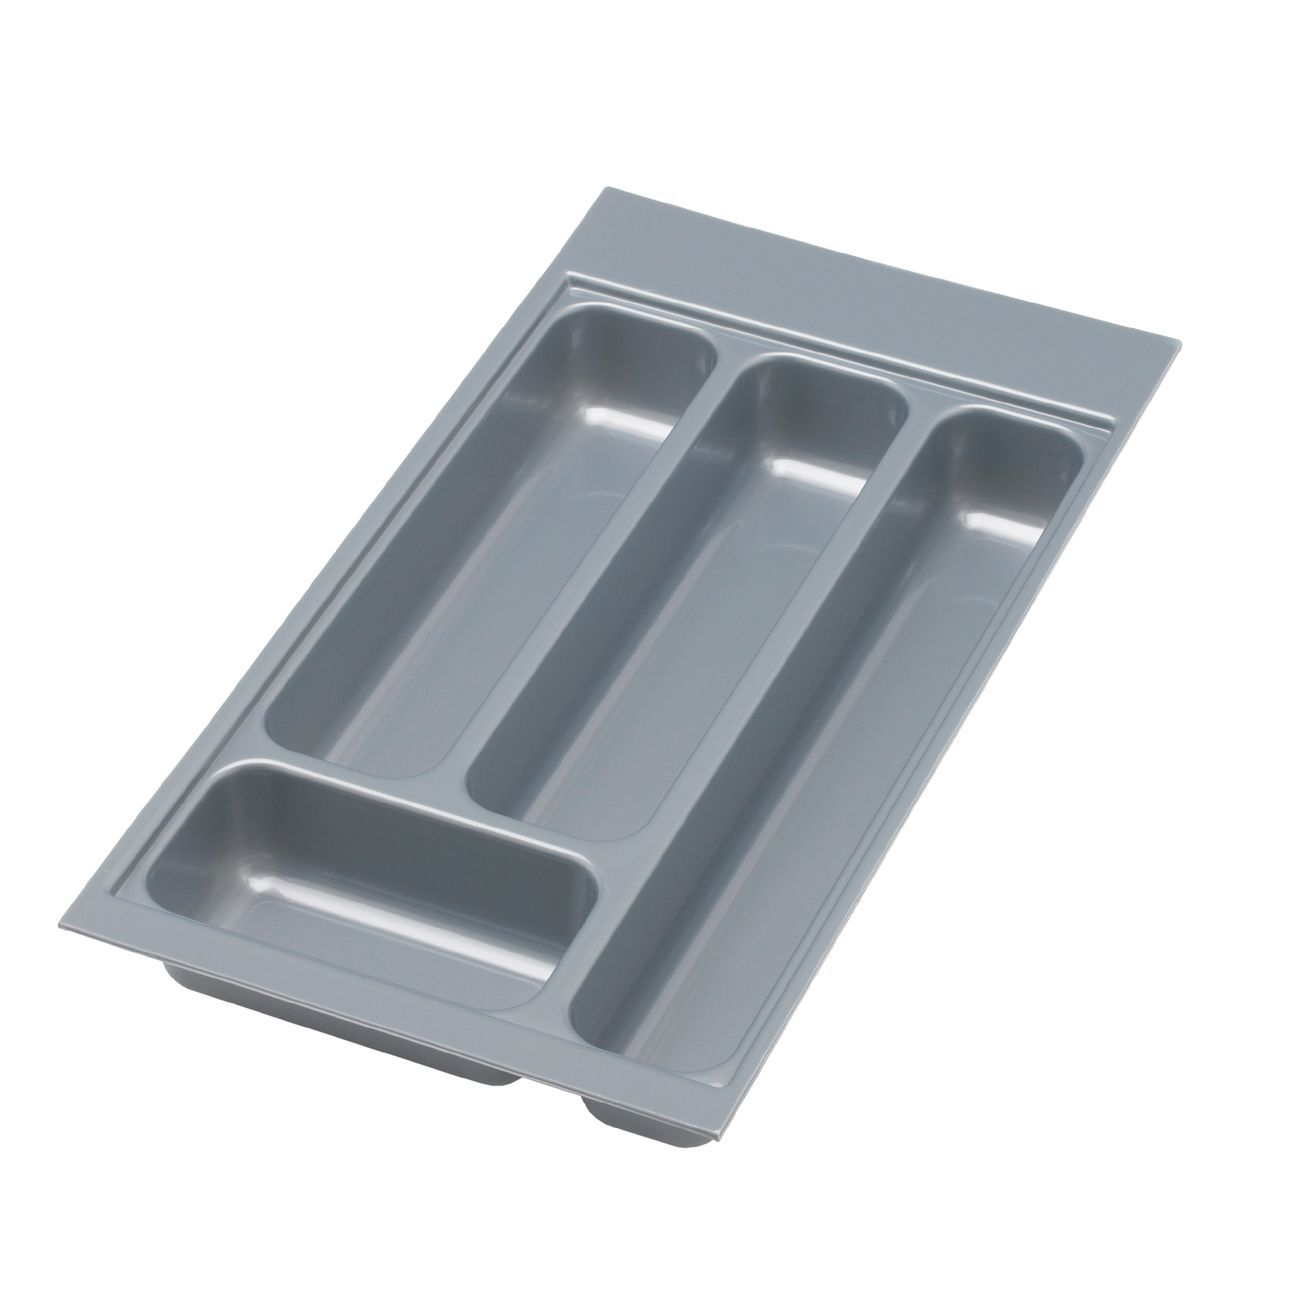 IT Kitchens Grey Plastic Kitchen Utensil Tray  : 0336109201c from www.diy.com size 1300 x 1294 jpeg 56kB